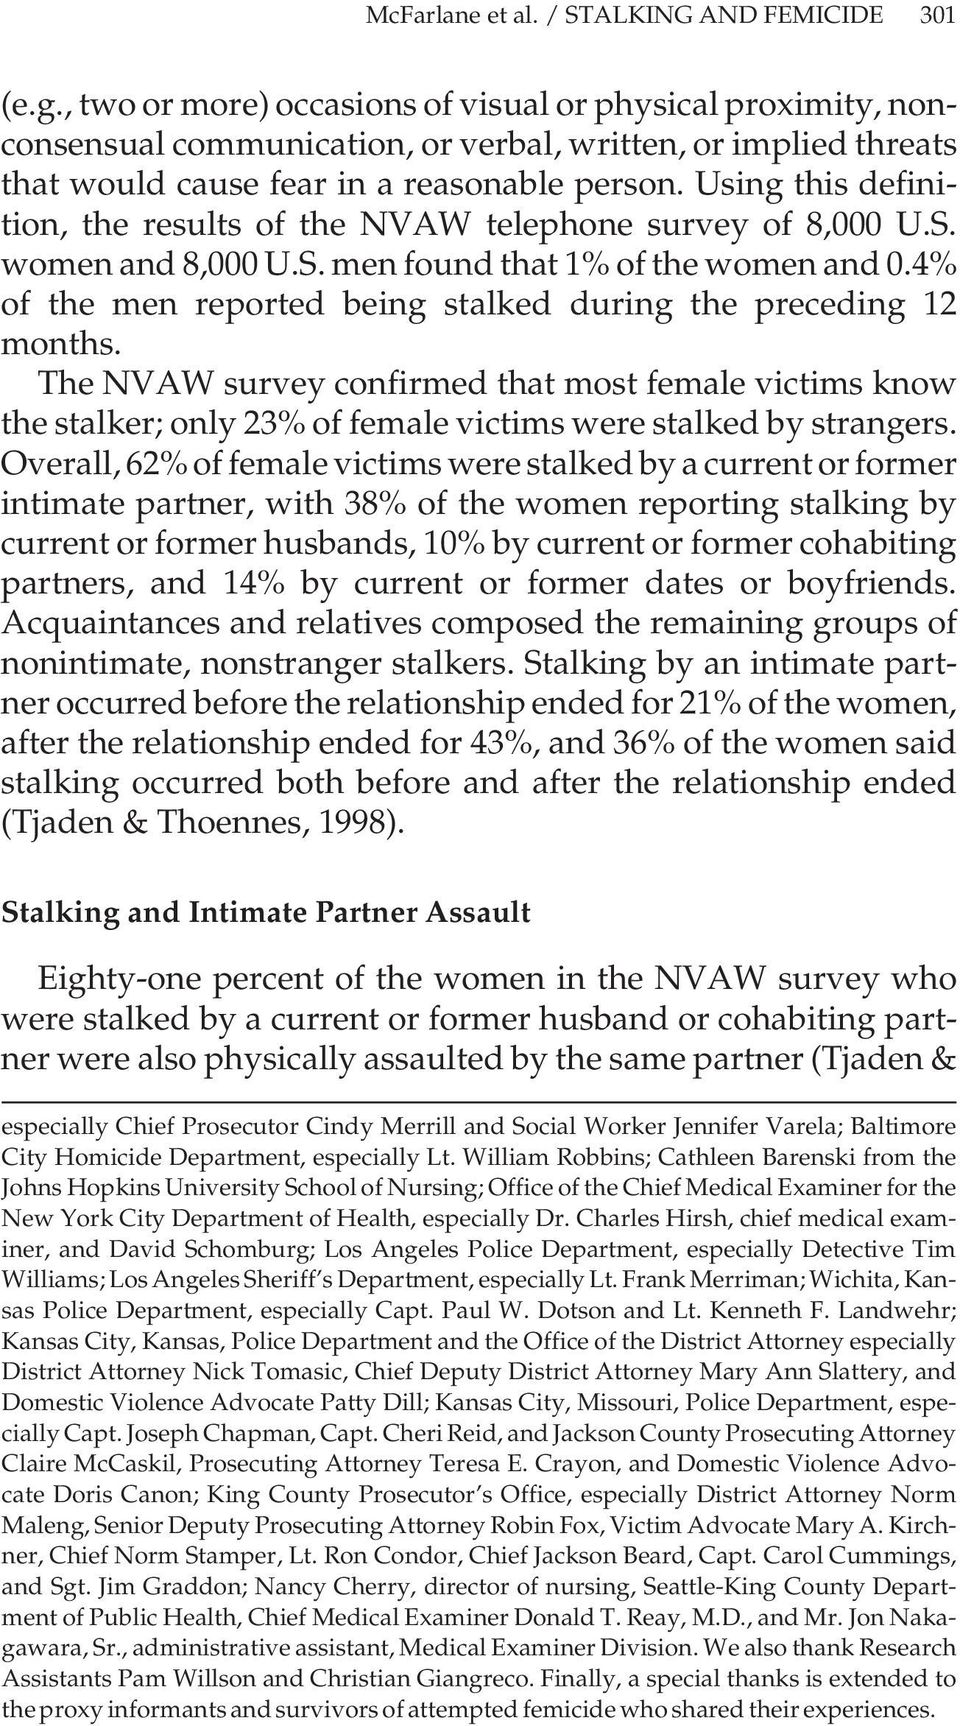 Using this definition, the results of the NVAW telephone survey of 8,000 U.S. women and 8,000 U.S. men found that 1% of the women and 0.